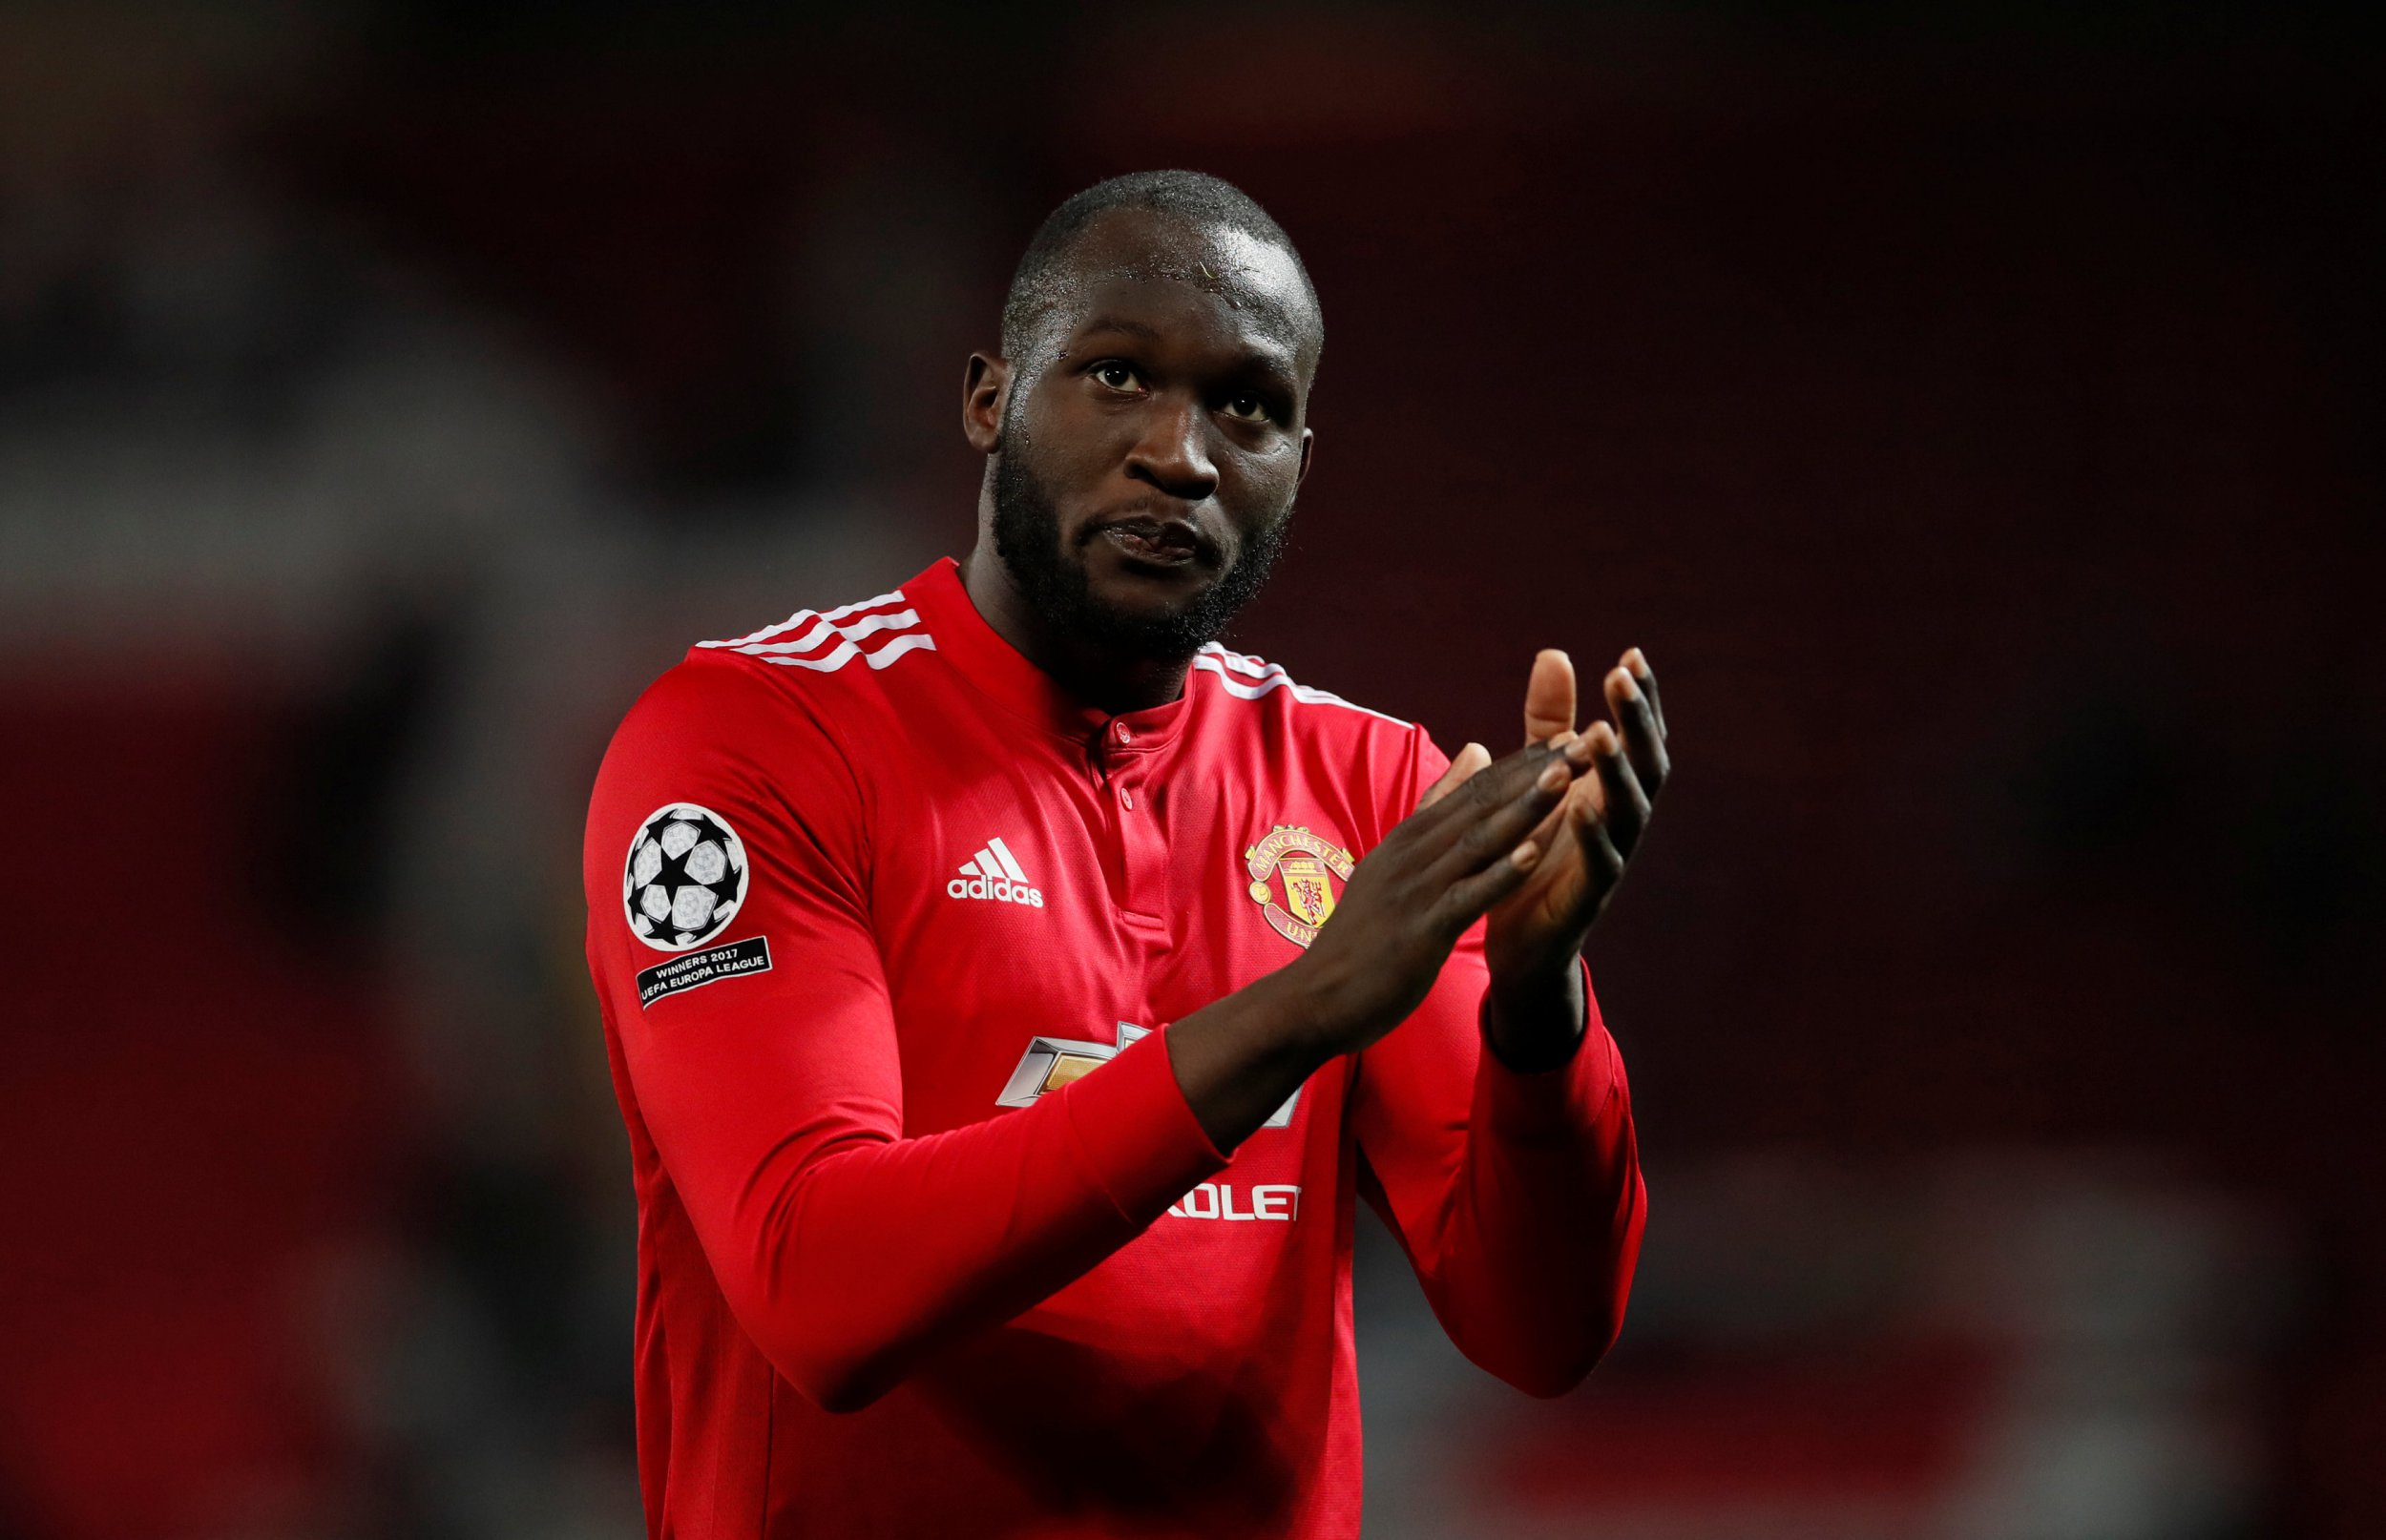 Romelu Lukaku doubted by his Manchester United teammates after Champions League exit